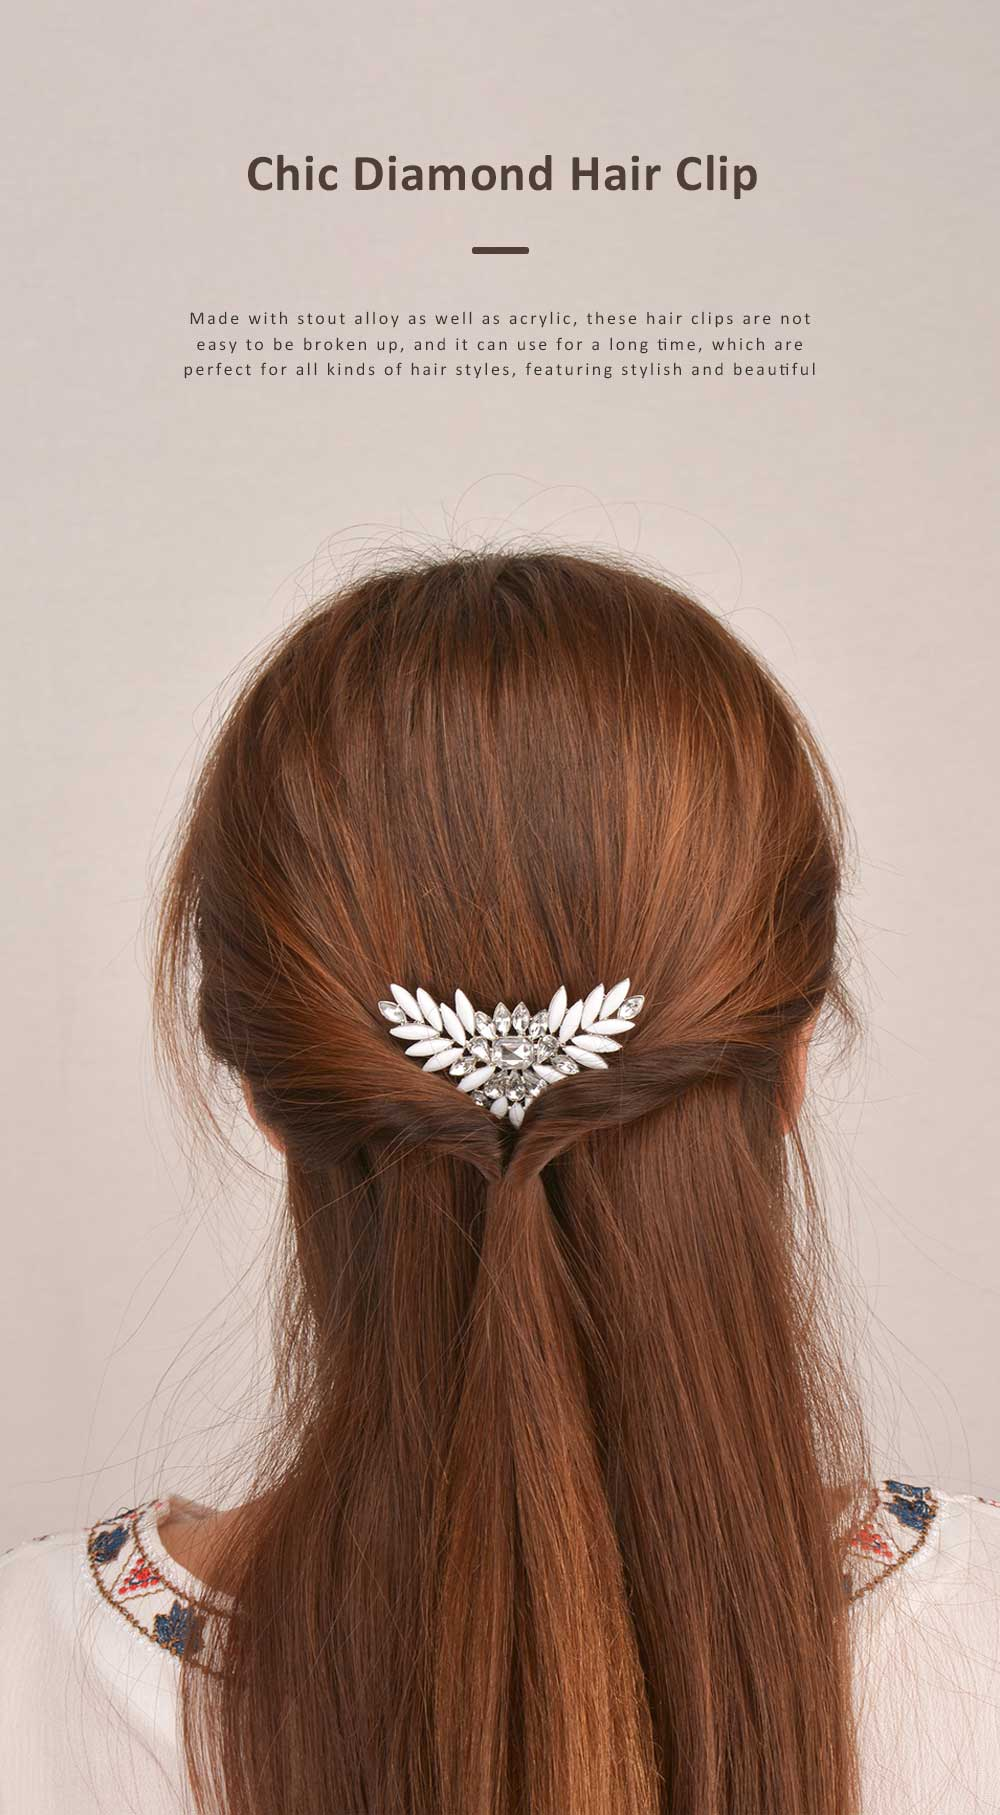 Chic Diamond Alloy Hair Clip Stylish Hair Pin for Women Girls Suitable for Different Hair Styles 0